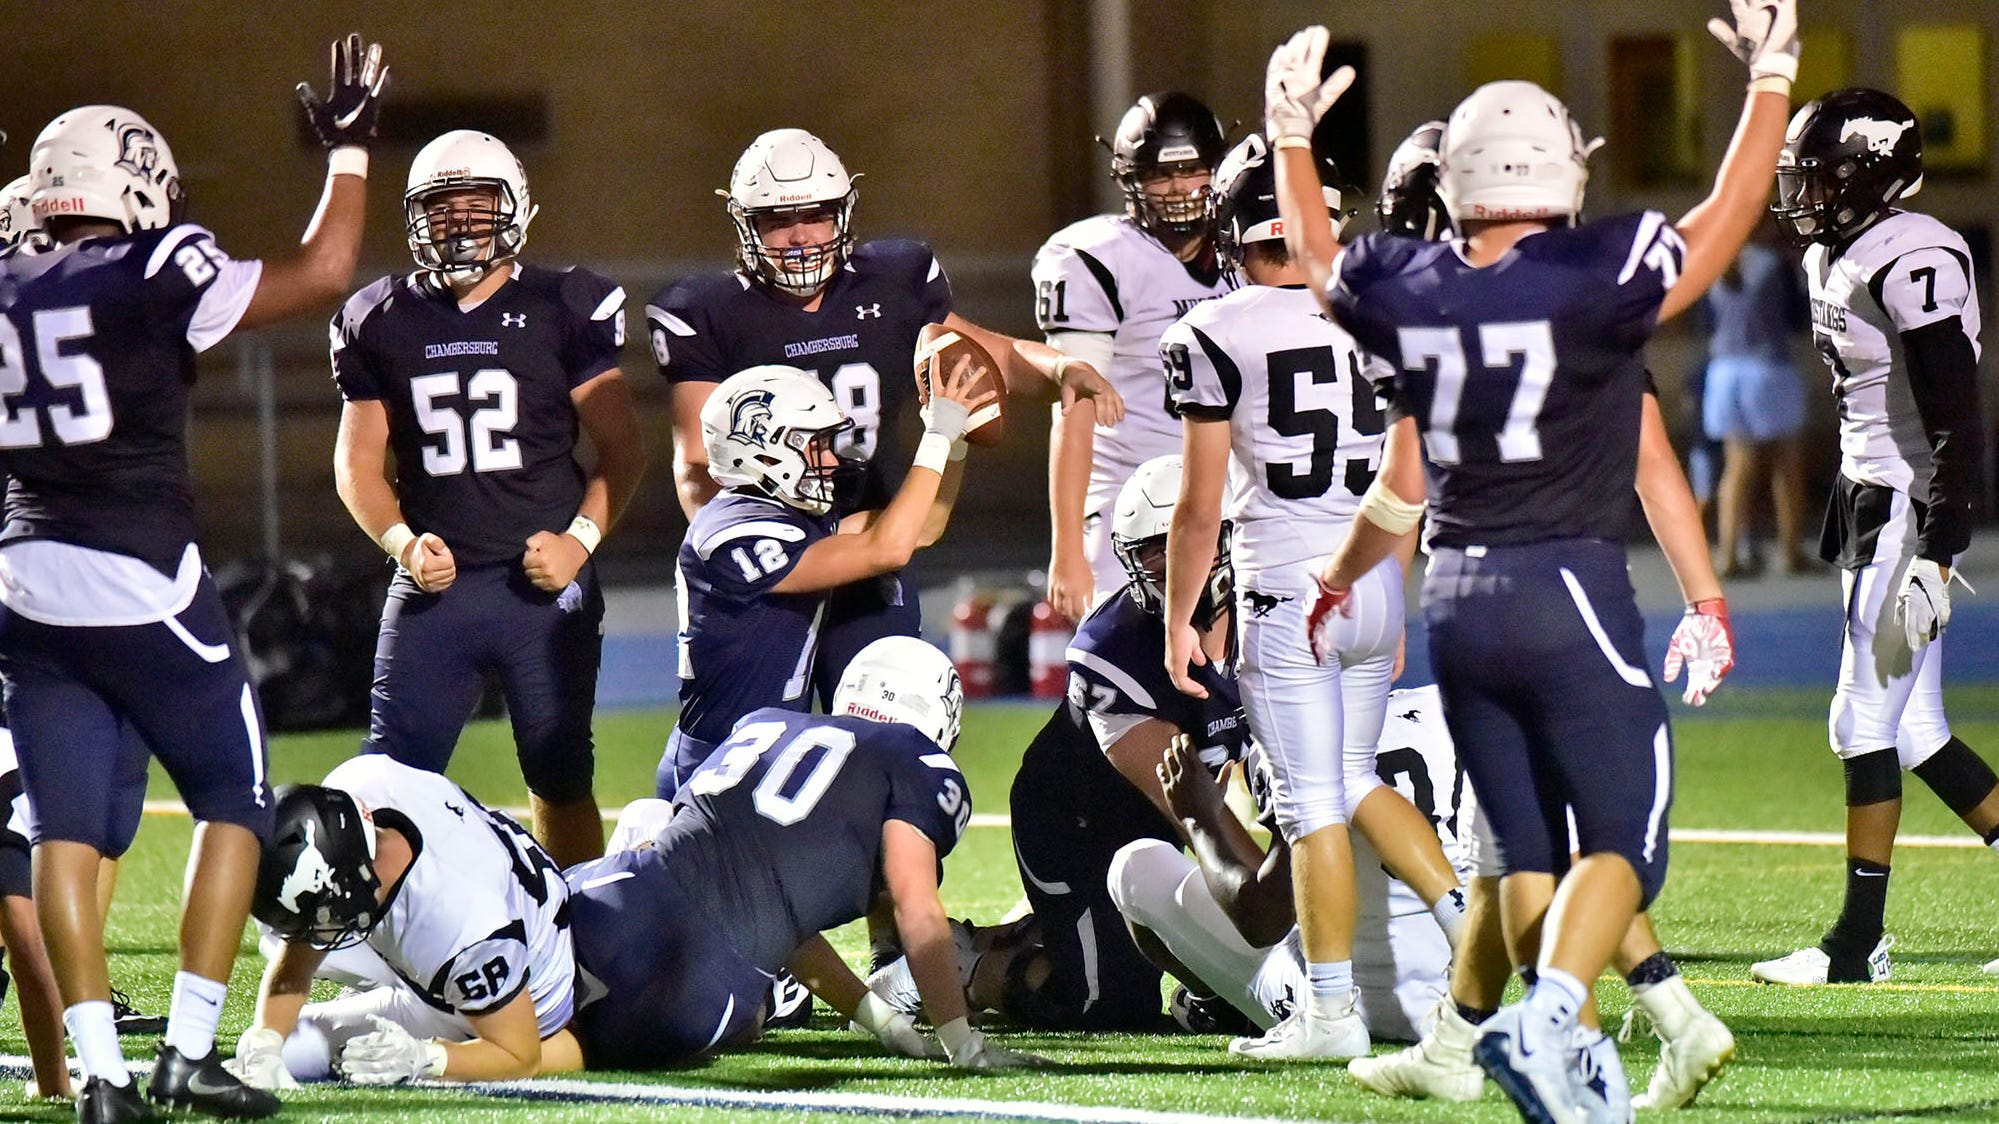 Chambersburg's Brady Stumbaugh (12) raises the ball after scoring on a keeper. Chambersburg routed South Western 51-26 in football on Friday, Aug. 31, 2018.